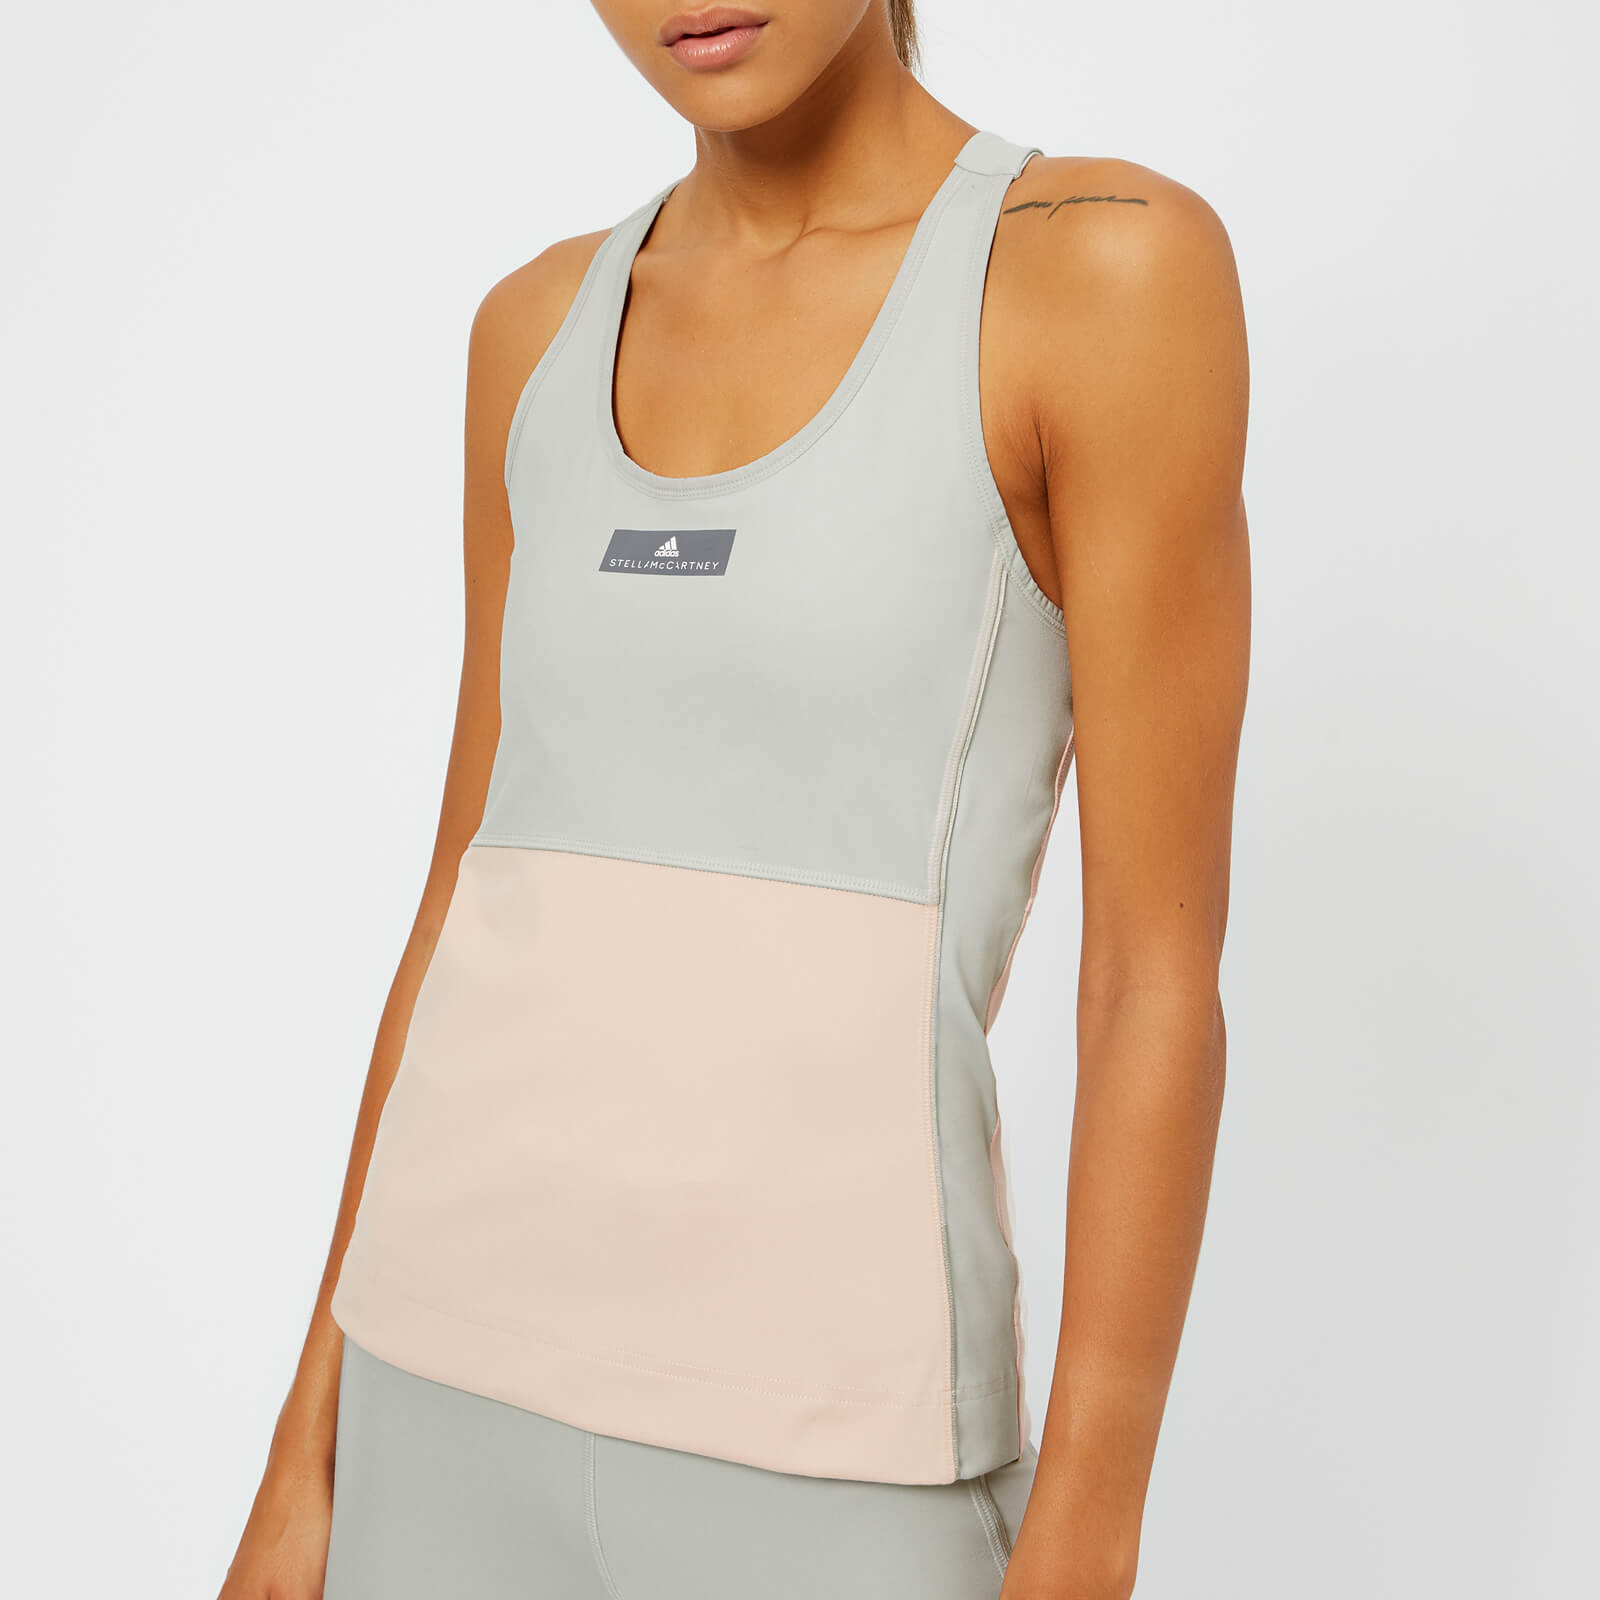 4b1a7607016 adidas by Stella McCartney Women s Yoga Comfort Tank Top - Pearl Rose Stone  - Free UK Delivery over £50